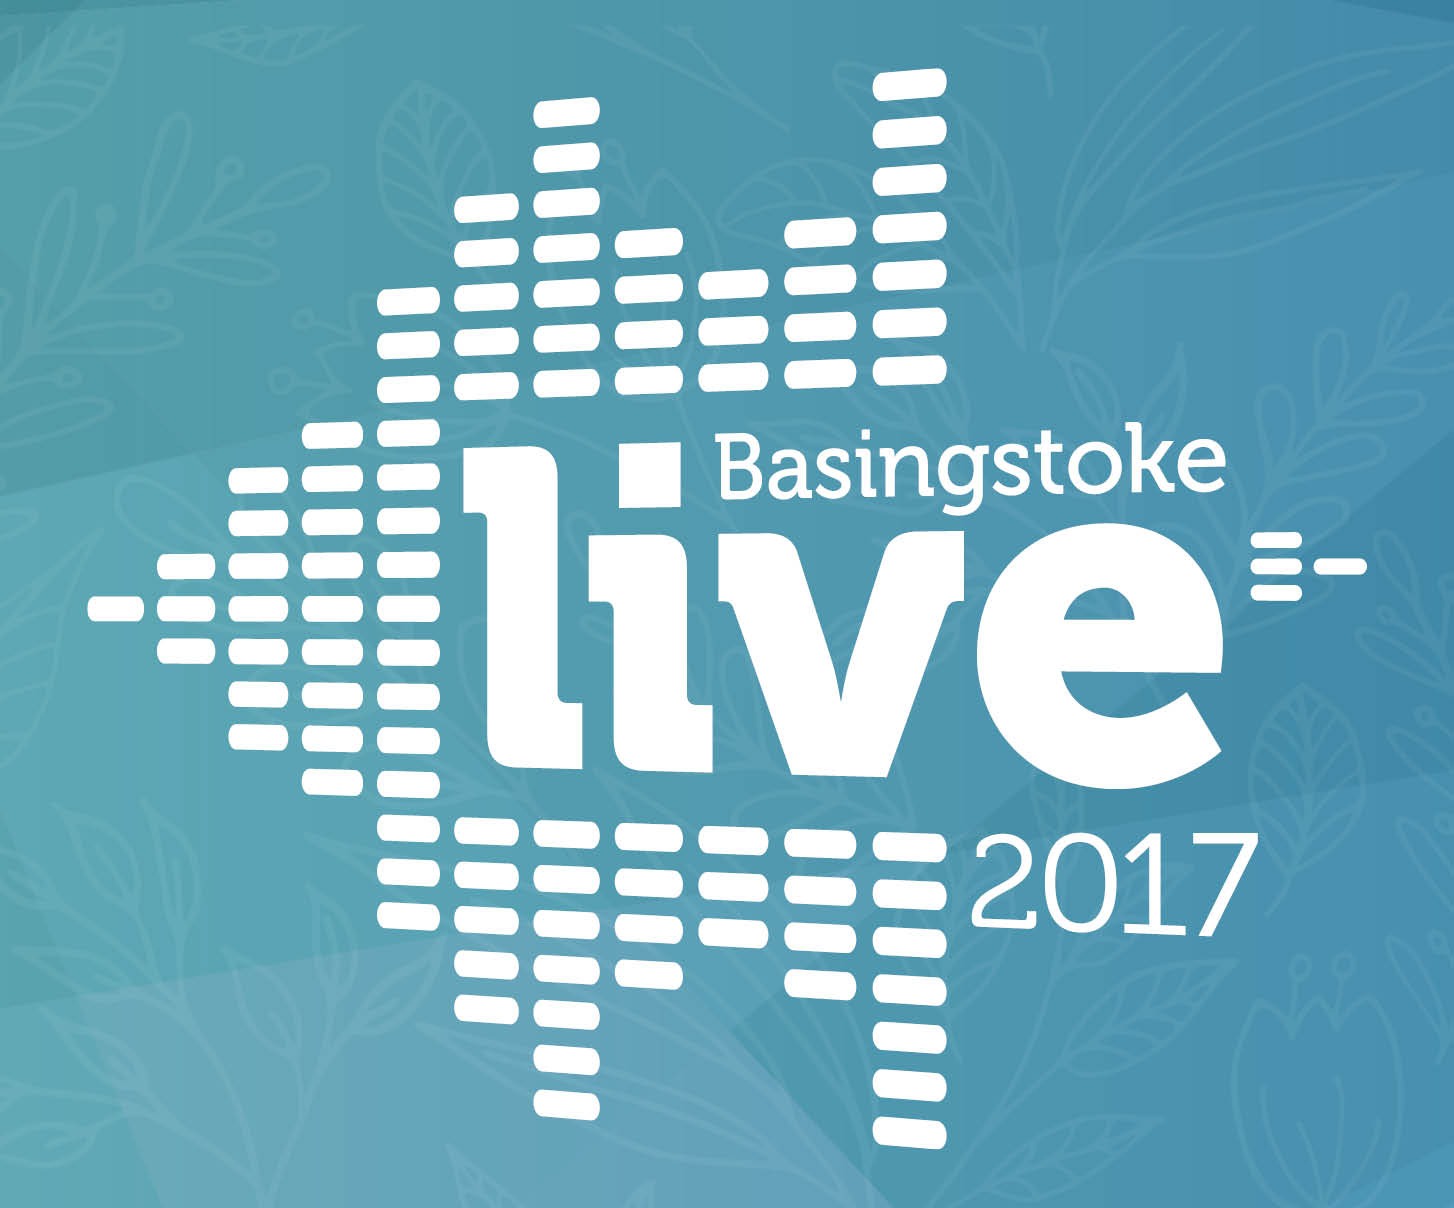 Get your free tickets for Basingstoke Live 2017